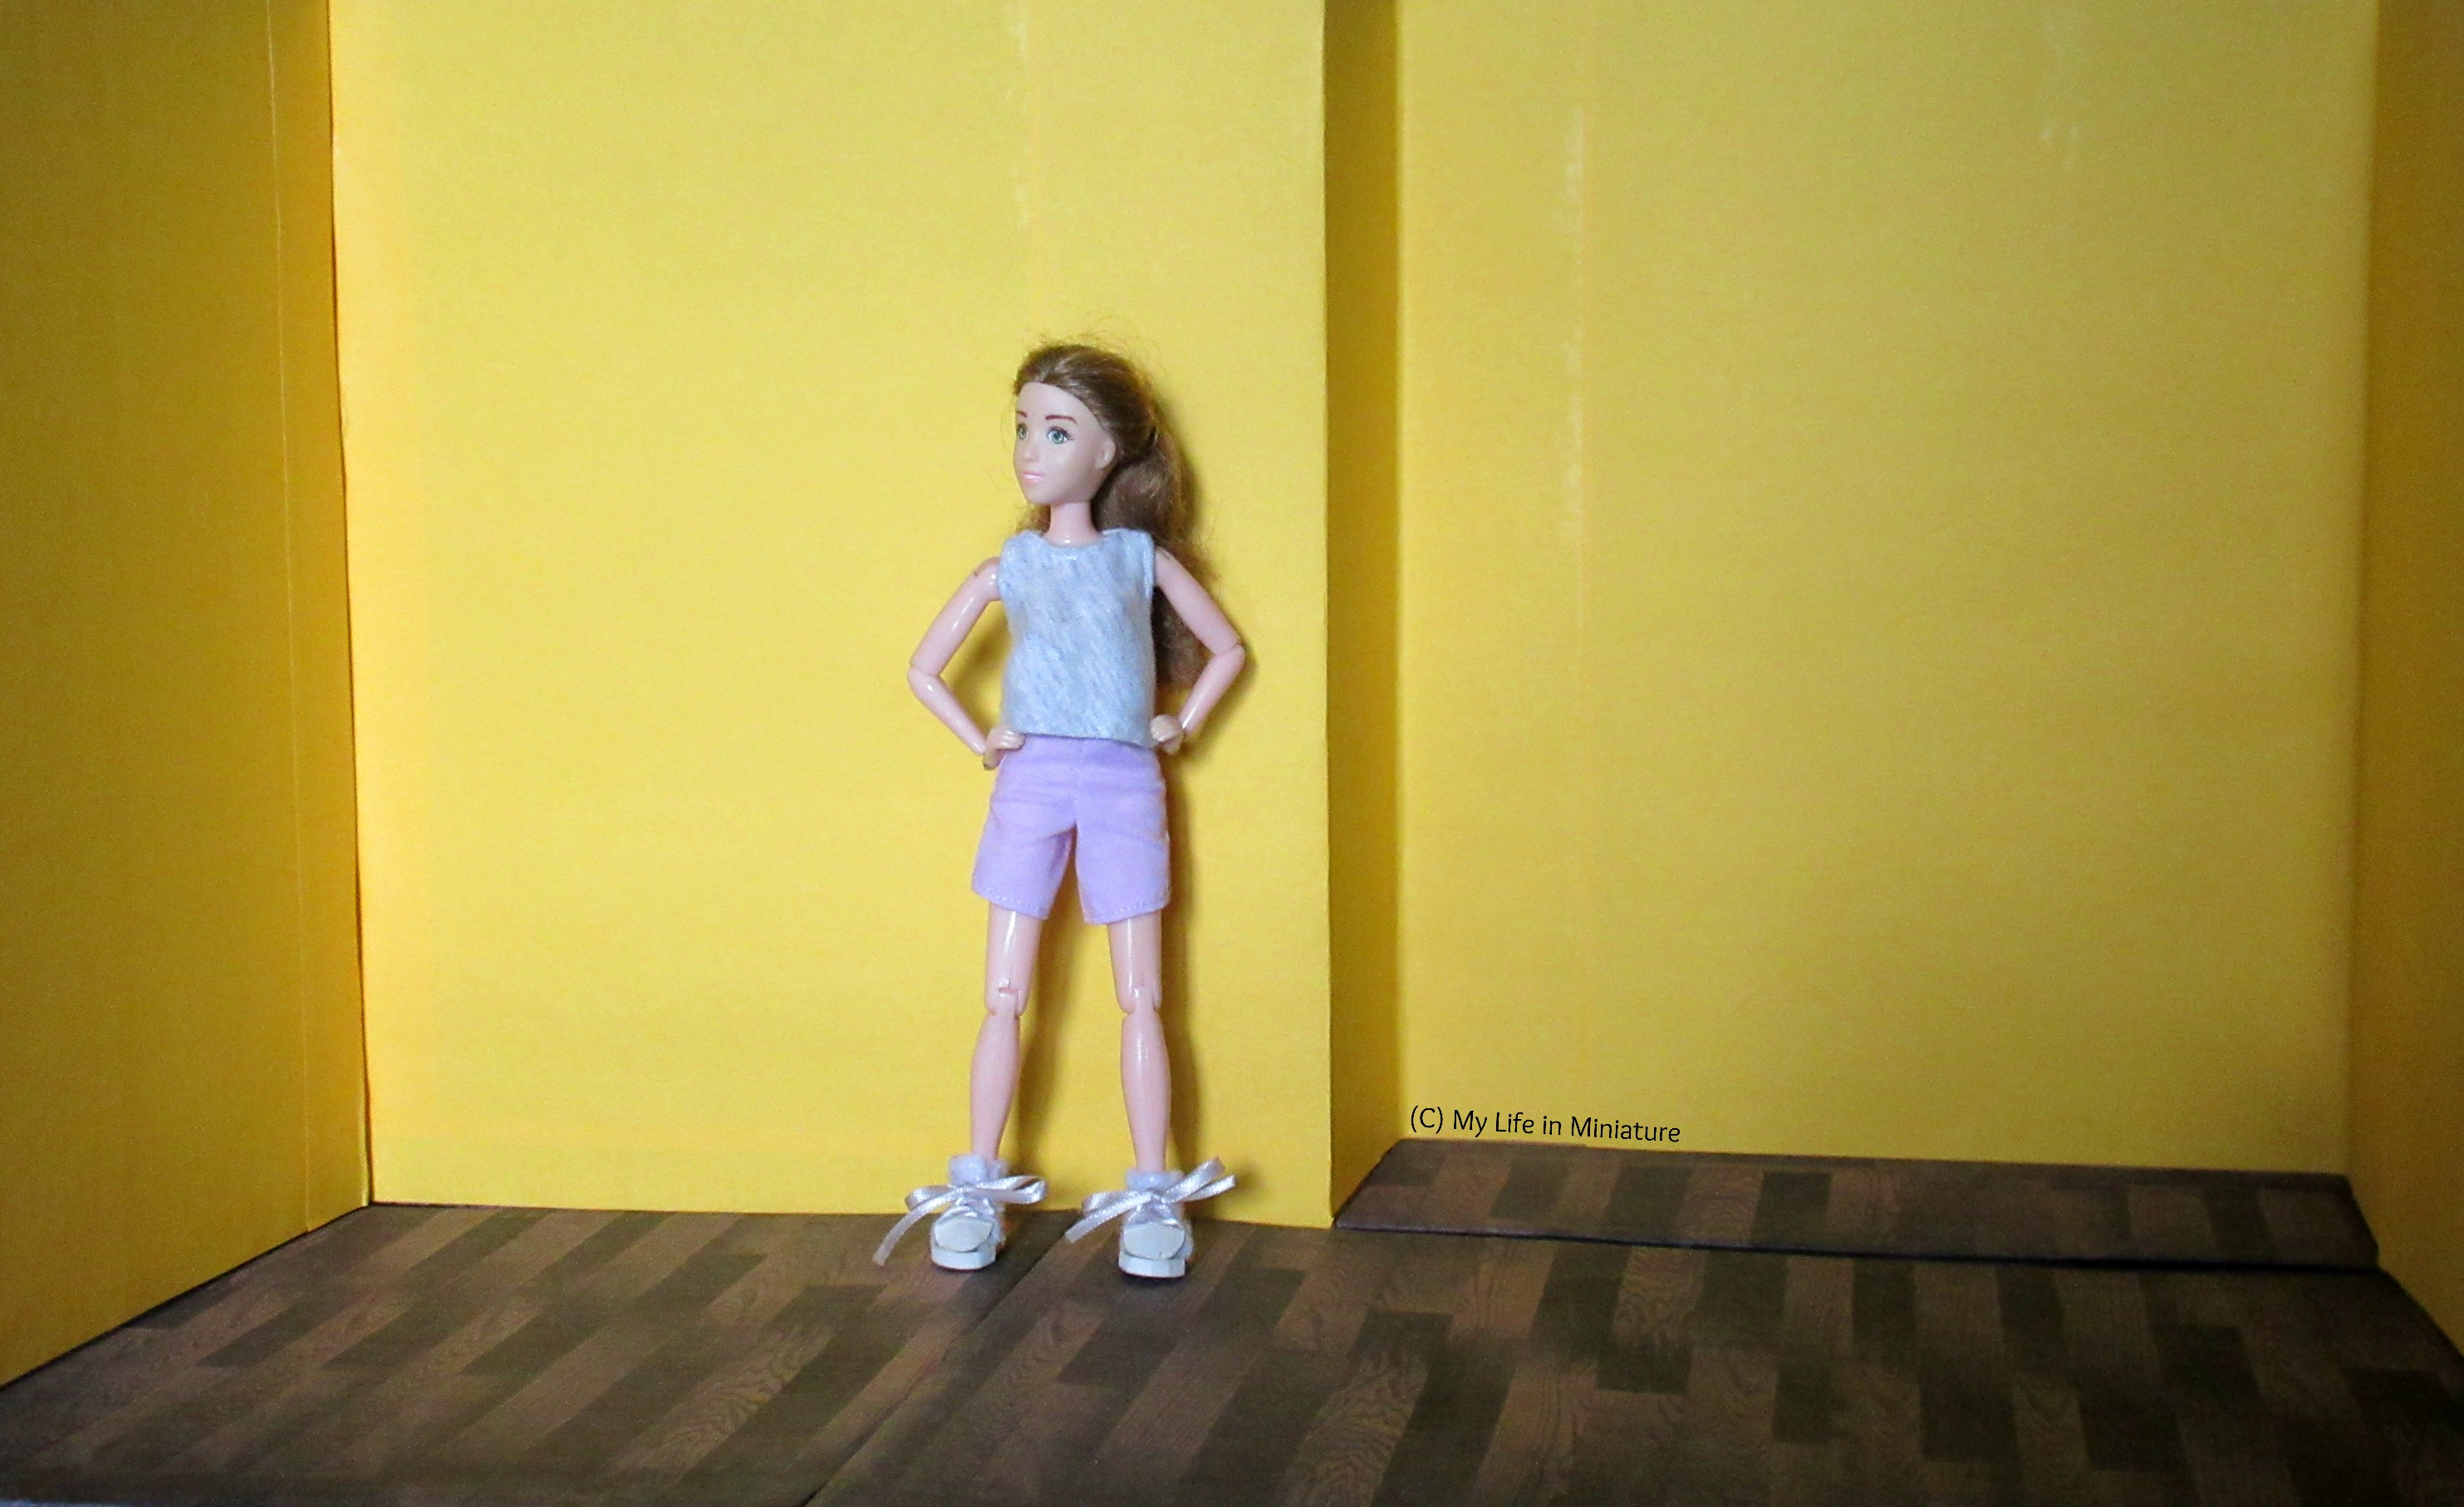 Sarah stands inside an opened-up cereal box. The walls are yellow, and the floor is dark wood. Her hands are on her hips and she looks around the space.